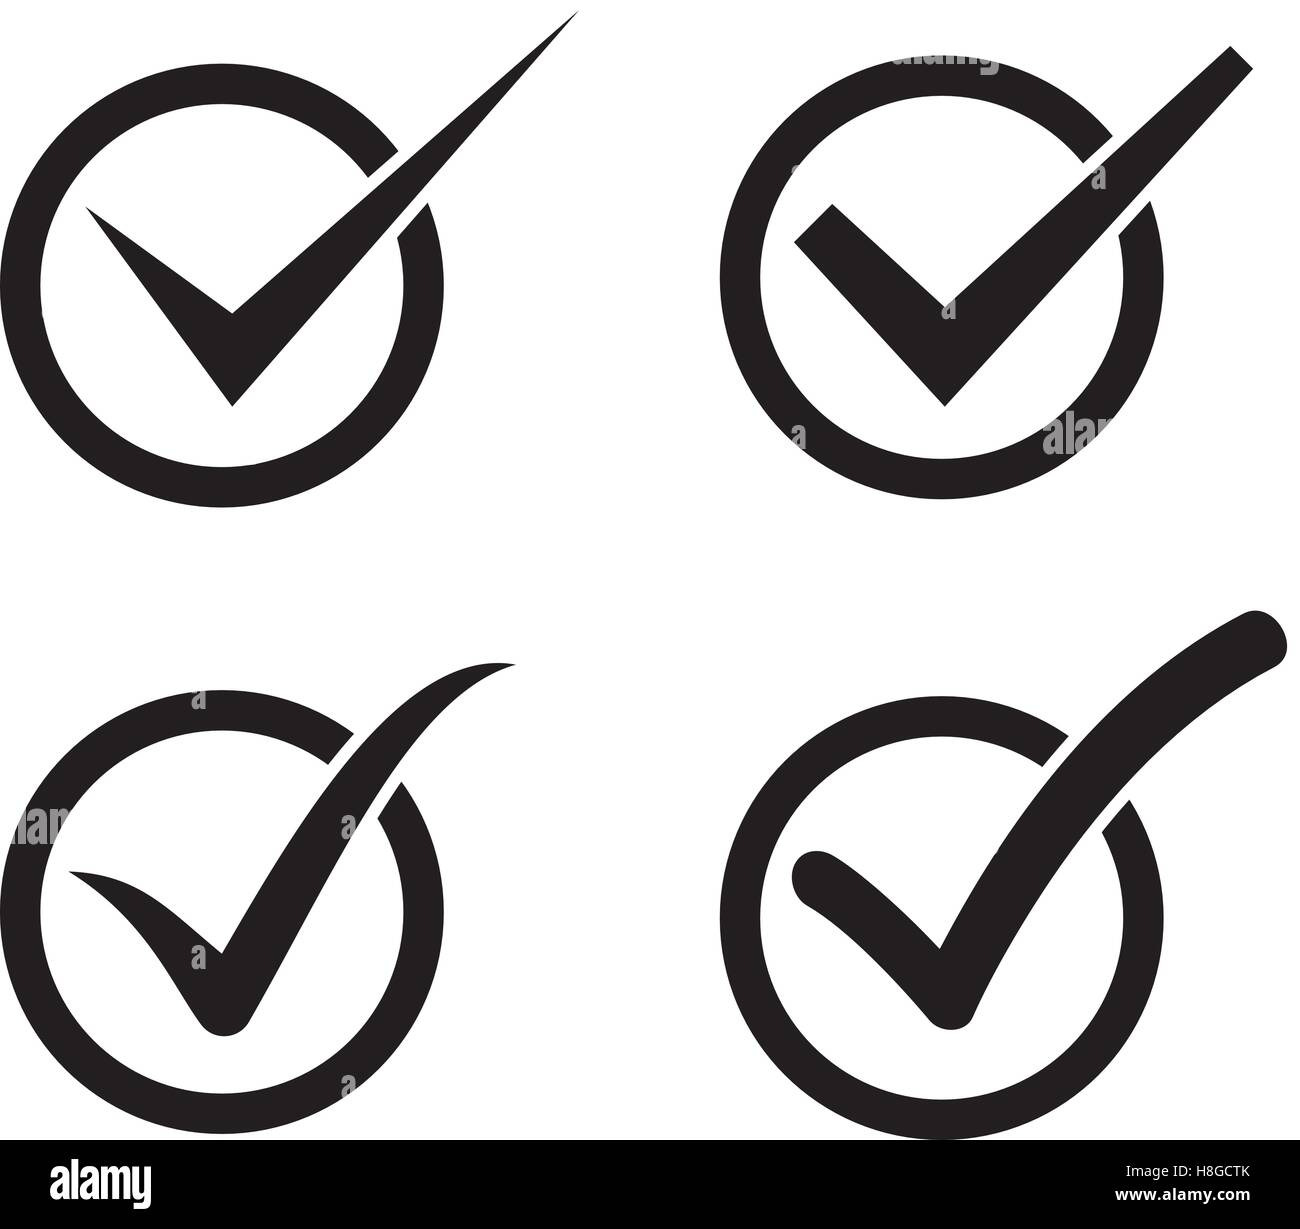 Set Of Check Mark Check Box Icons Stock Vector Art Illustration